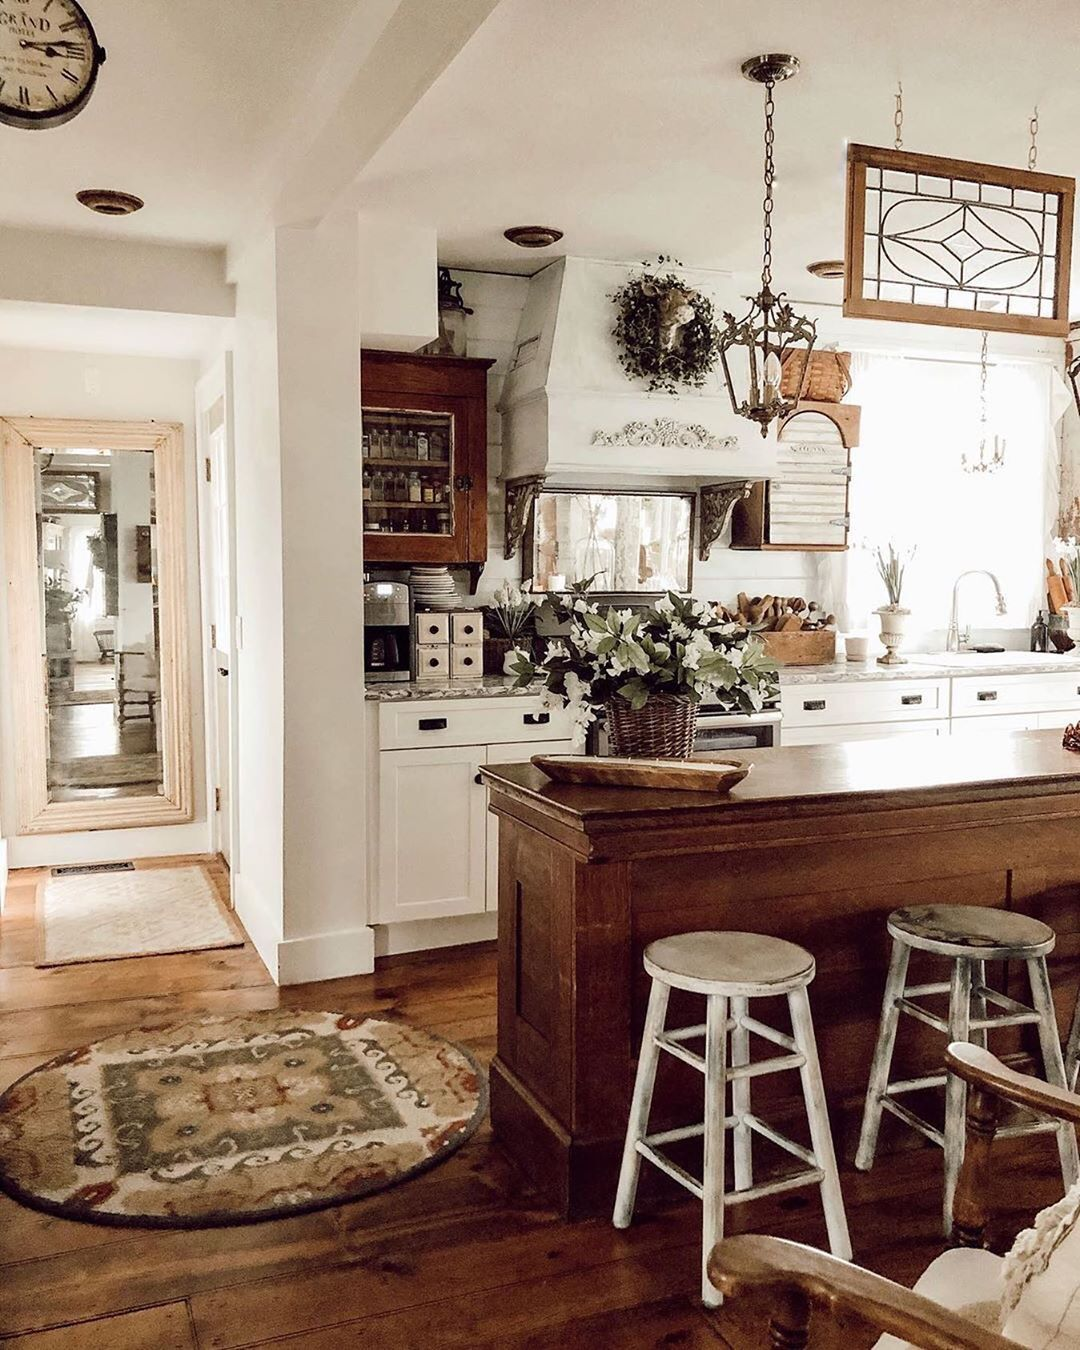 Farmhouse Fanatics On Instagram A Little Kitchen Inspo For The Rusticfarmhouse Lovers Out There Houseon French Country Kitchens Home Home Kitchens